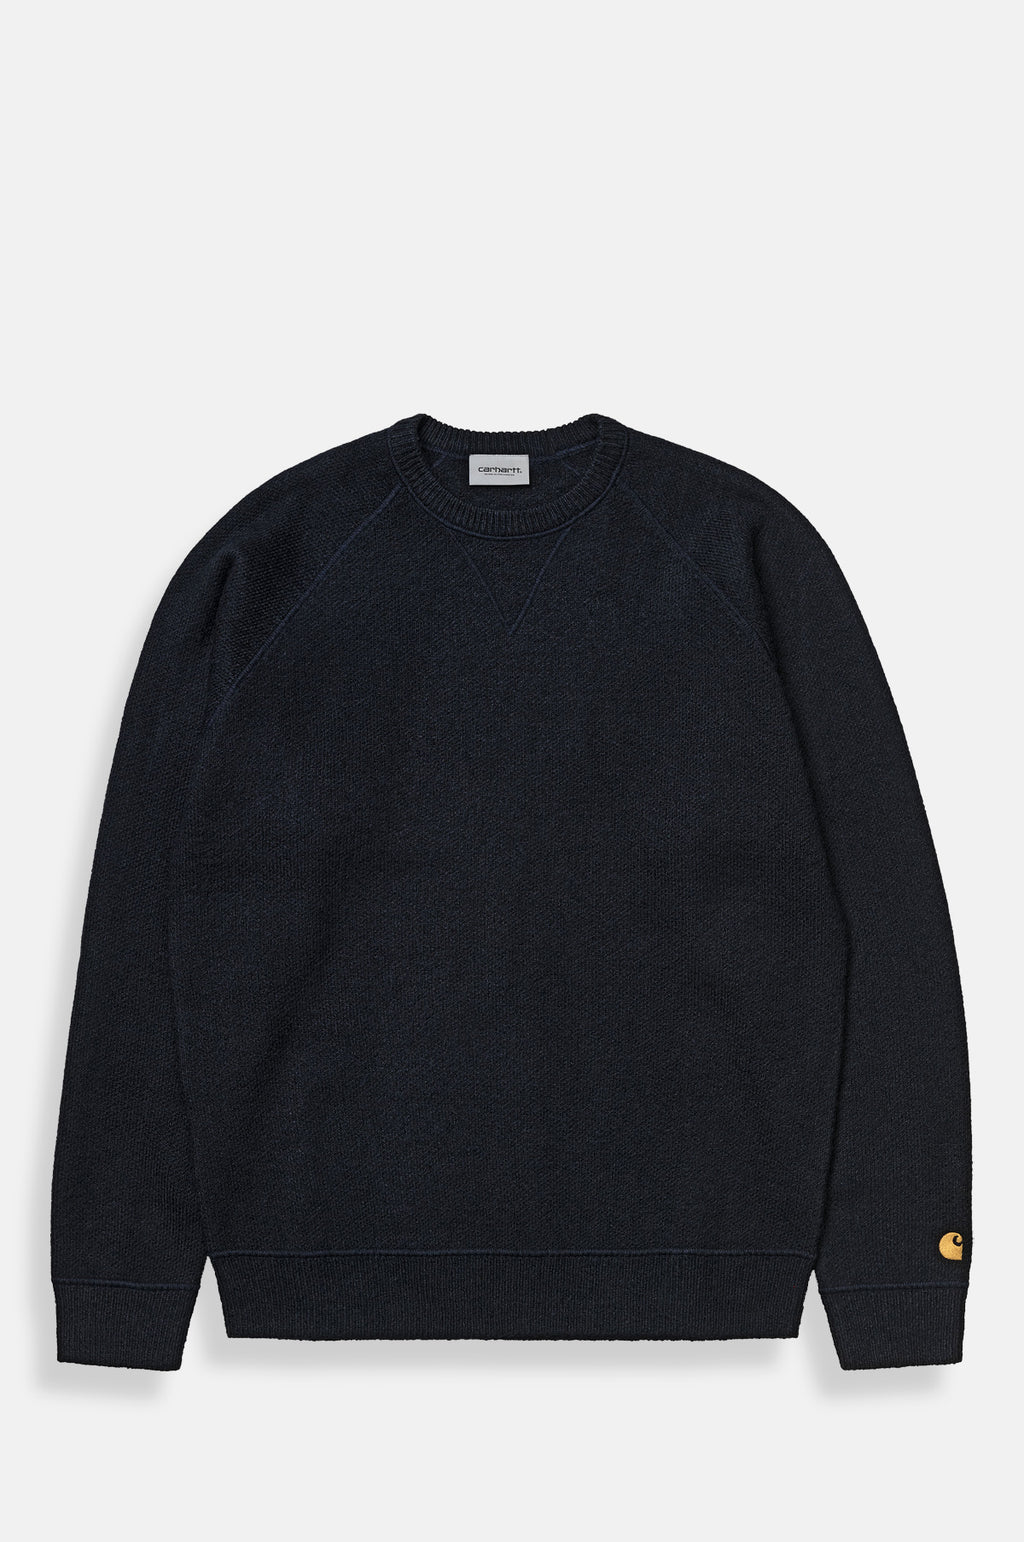 Chase Sweater Knit in Dark Navy and Gold